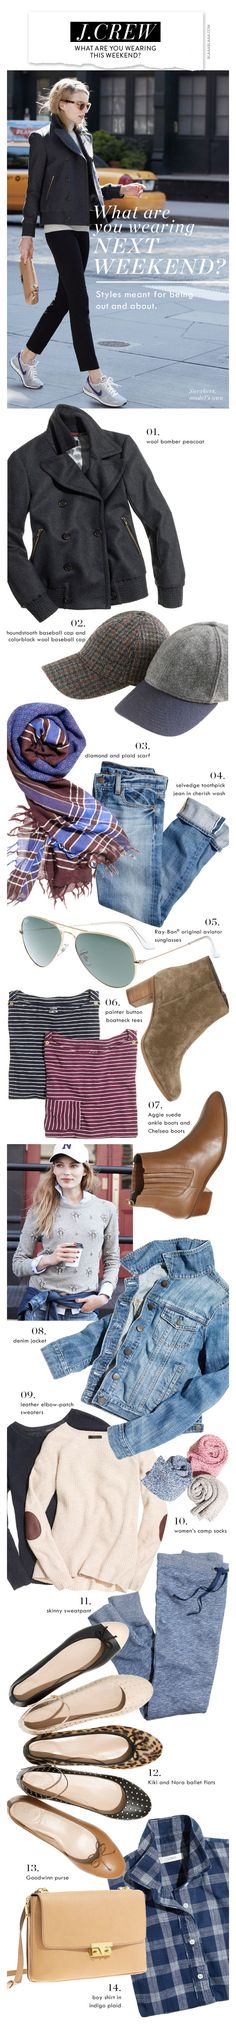 J.Crew: What are you wearing this weekend?